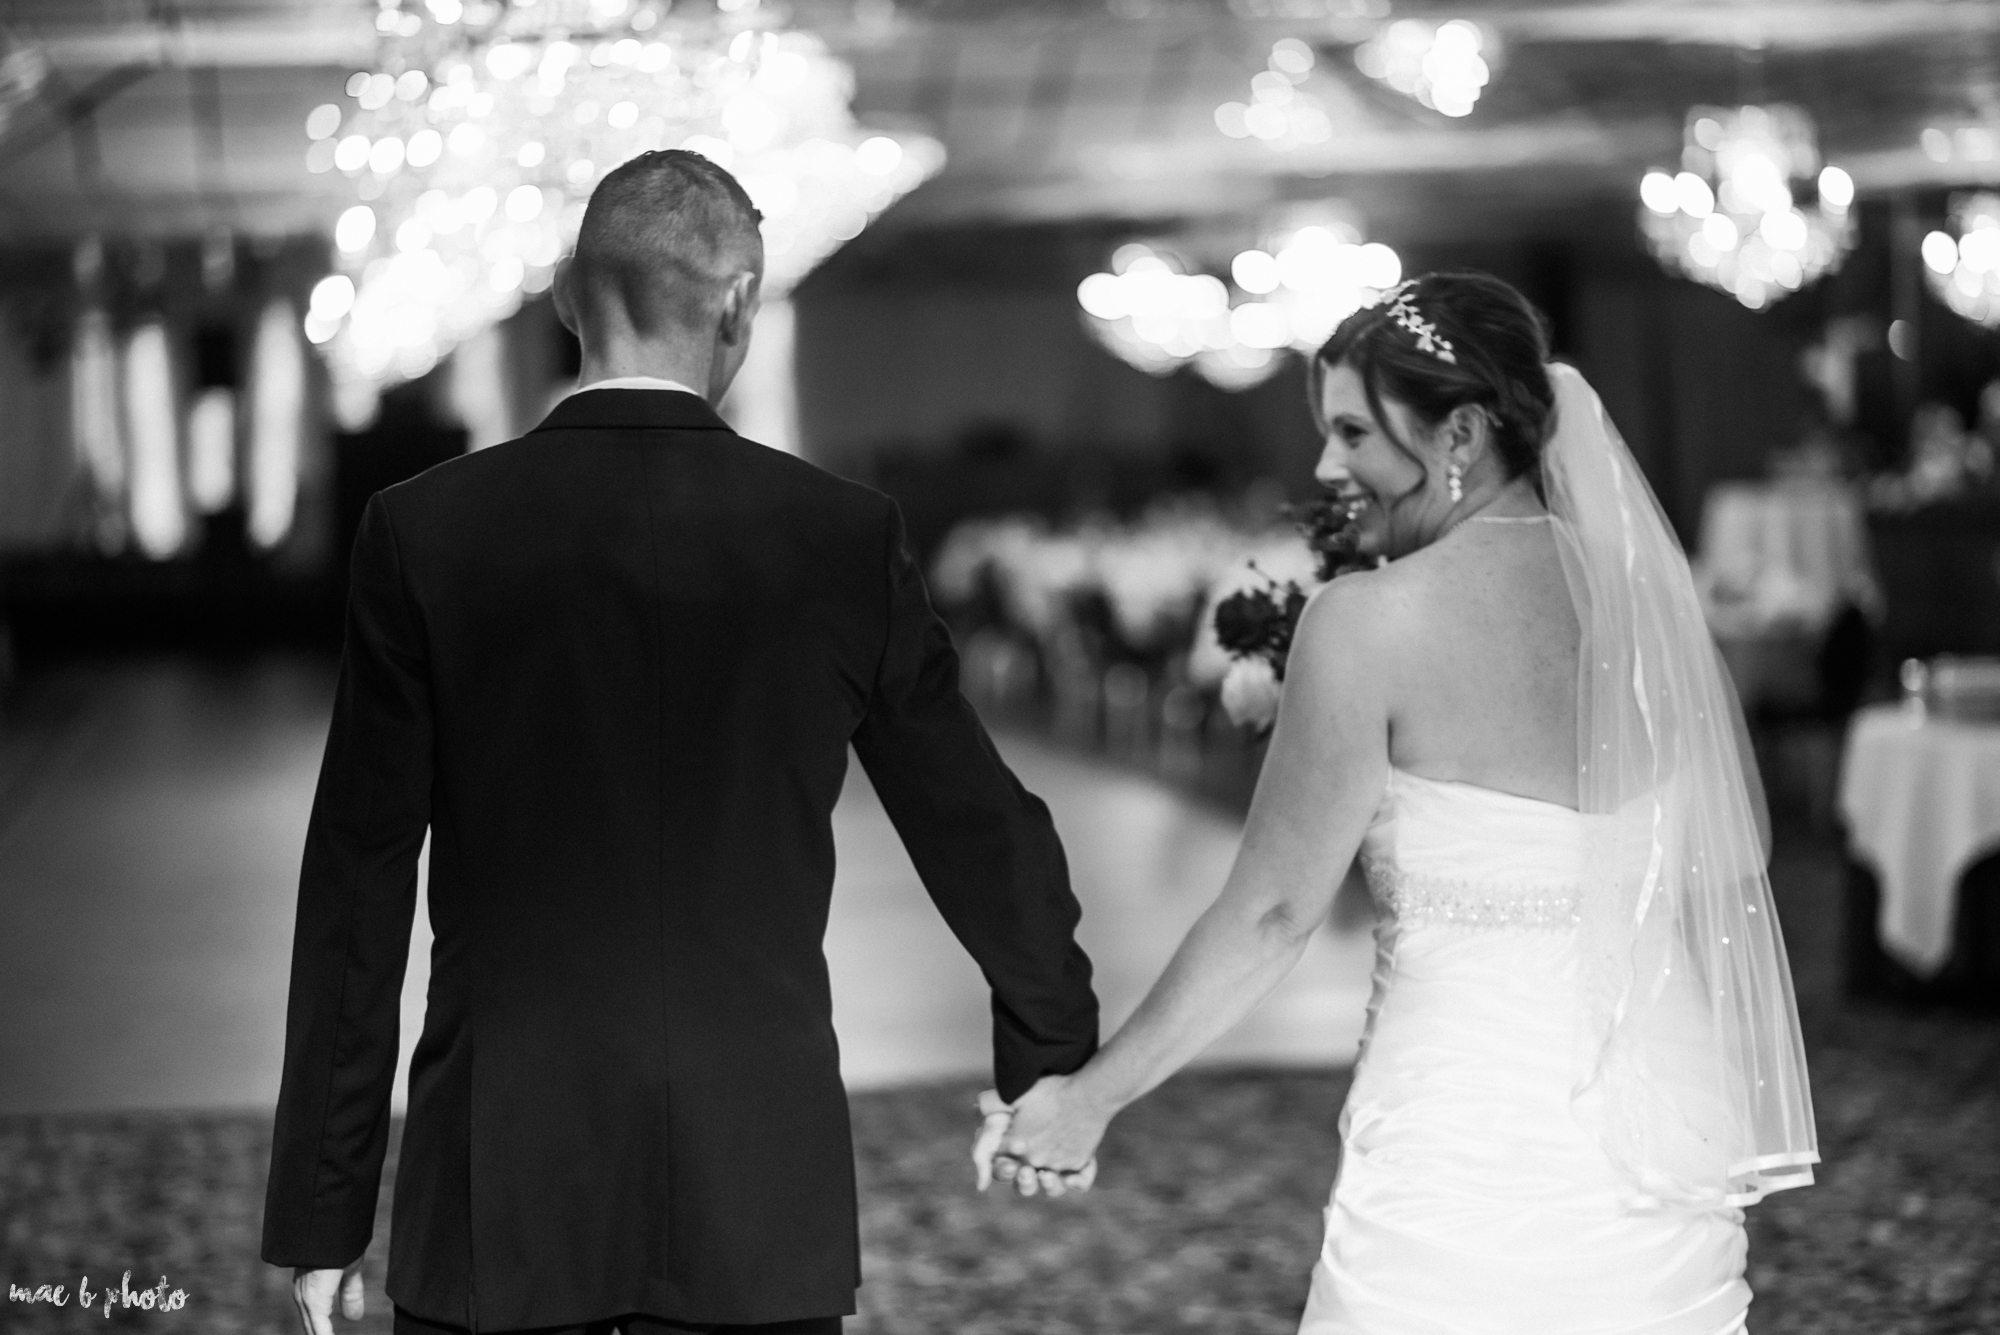 tracey and aaron's personal fall wedding at tiffany's banquet center in brookfield ohio-42.jpg